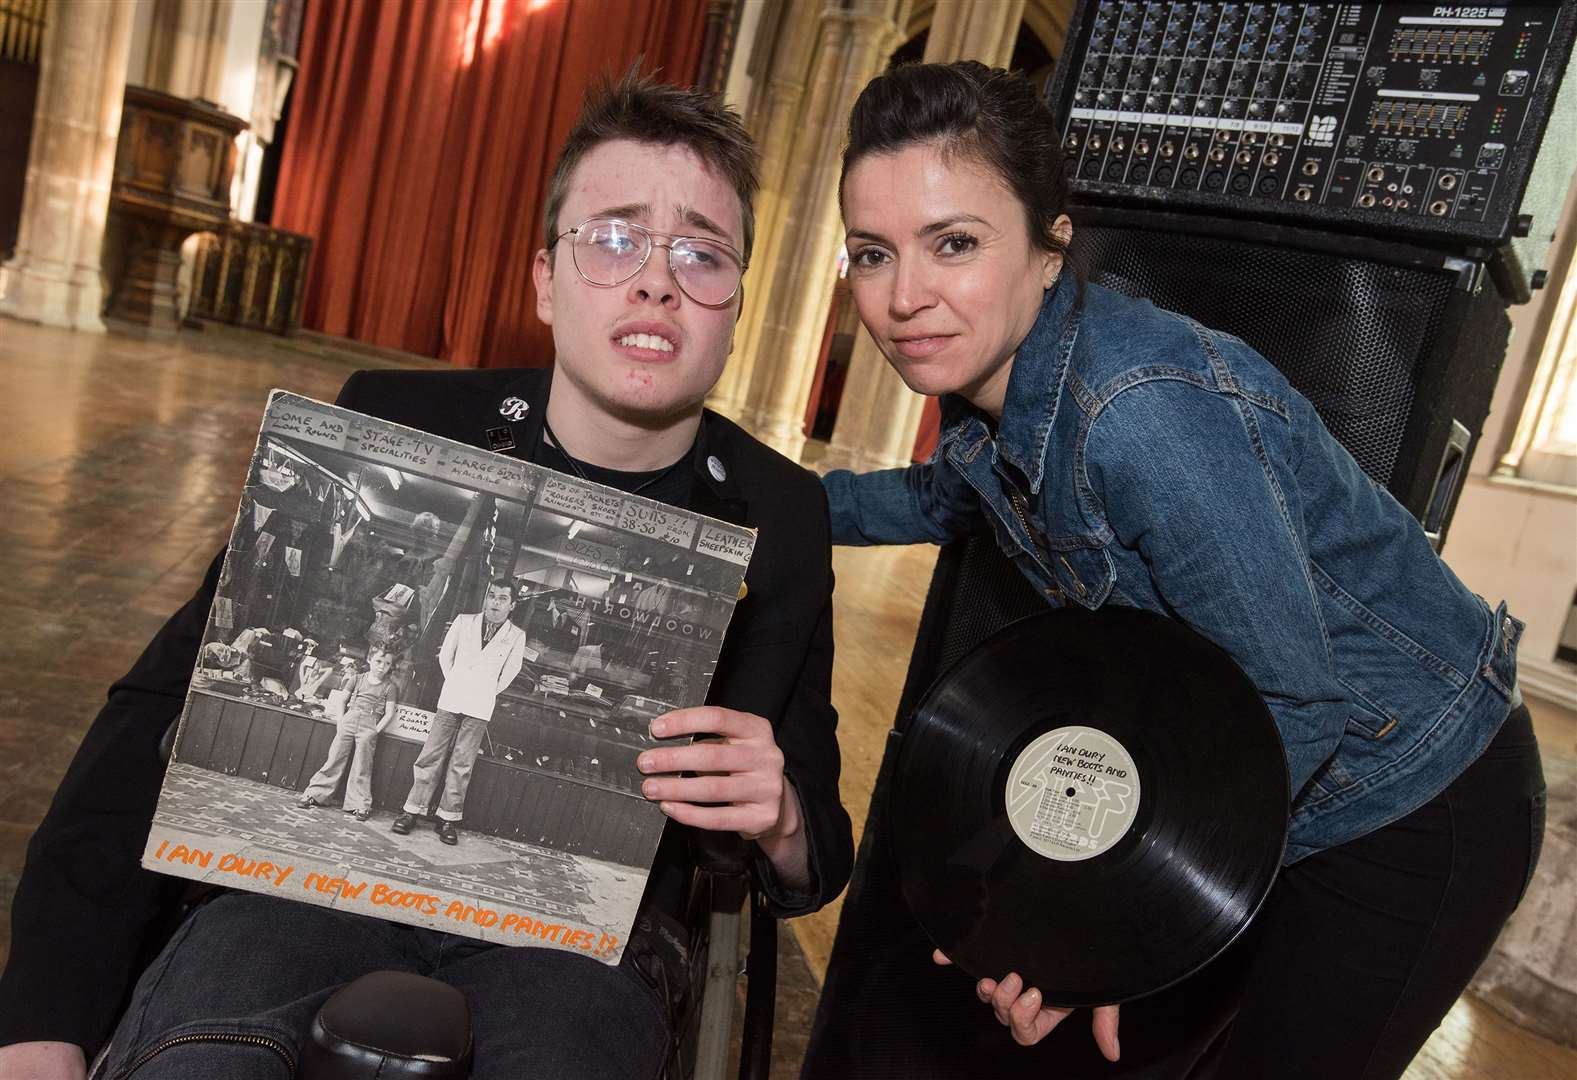 School student selects album for celebration of Record Store Day in Sudbury